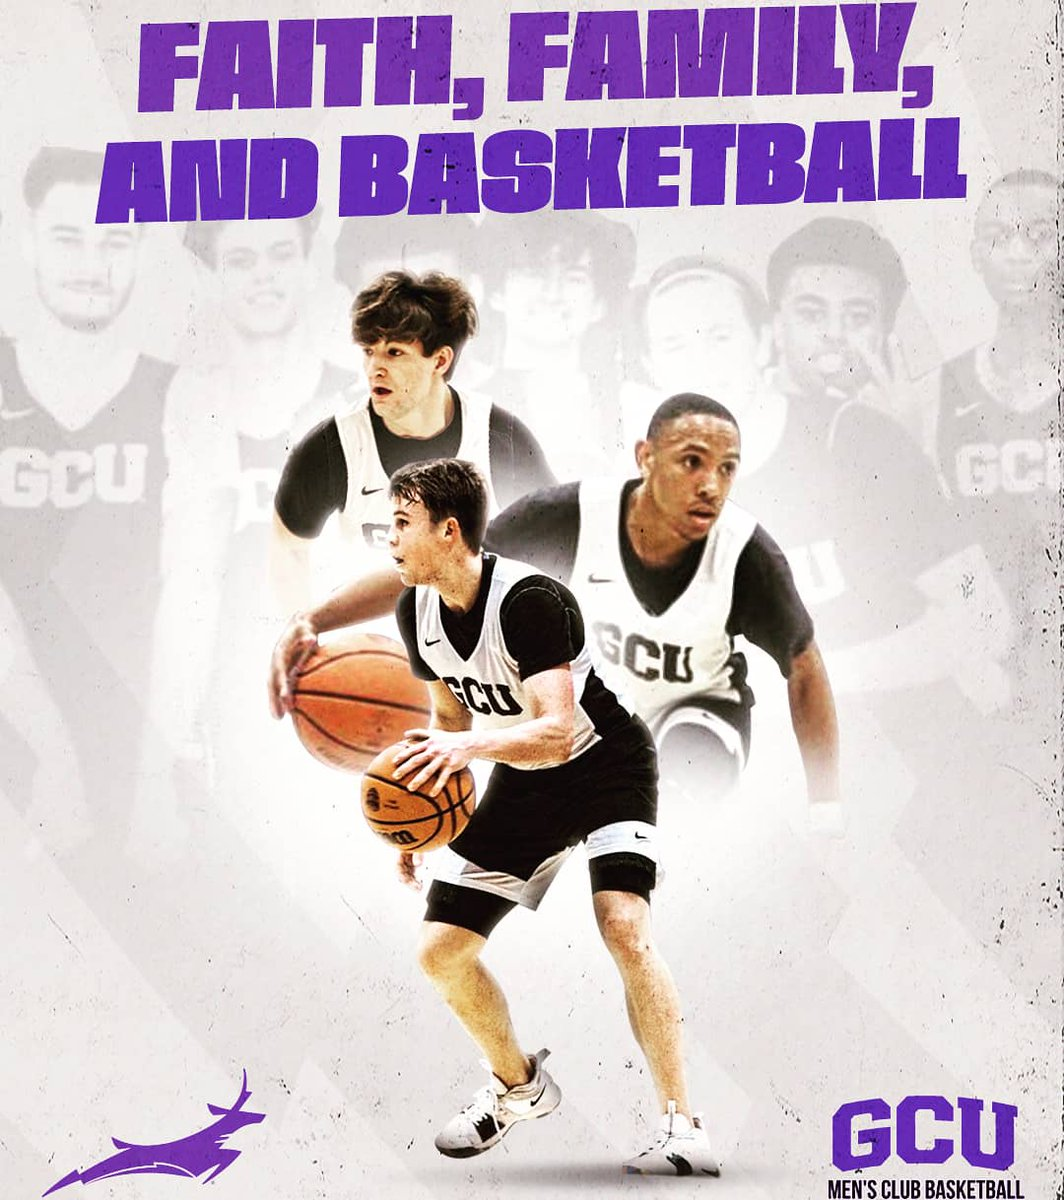 If you are an incoming freshman or collegiate transfer looking to play men's club basketball at a GCU on competitive level contact @coachmattgordon or @laneheadcrazy on IG for more details!  #basketball #gcu #ballislife #RETWEEETME https://t.co/gOD3hiZDHZ